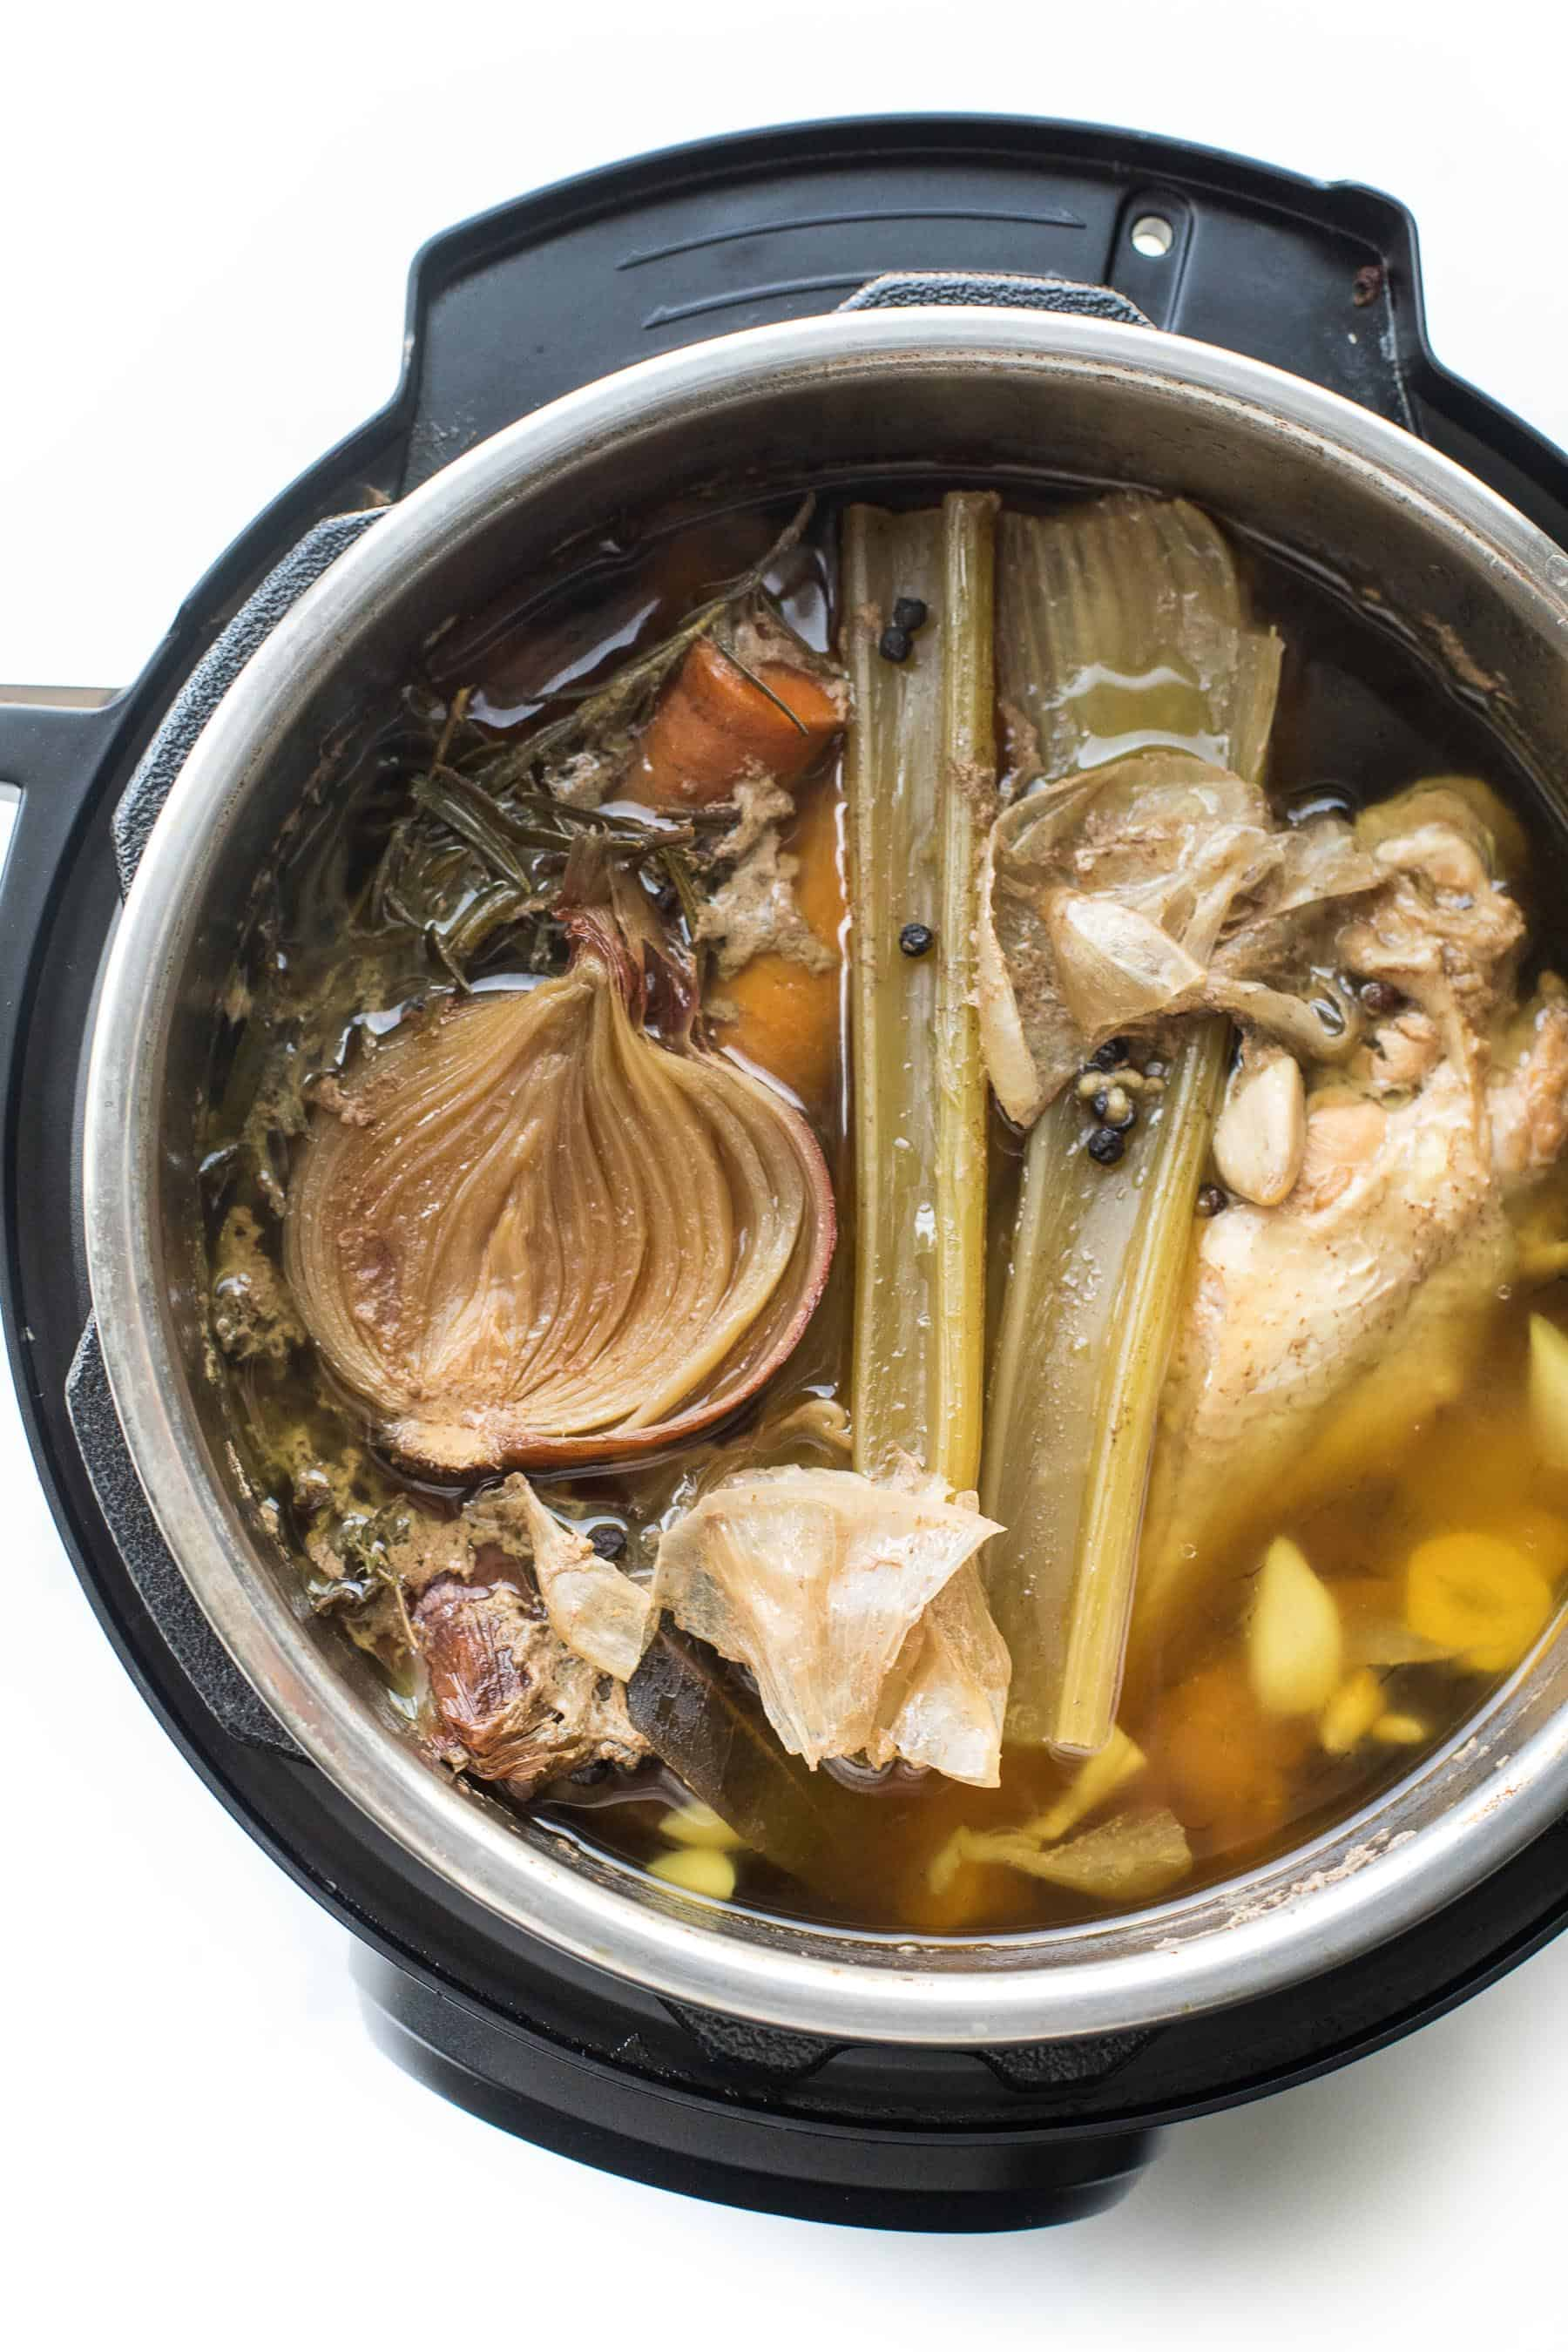 ingredients in an instant pot after making bone broth